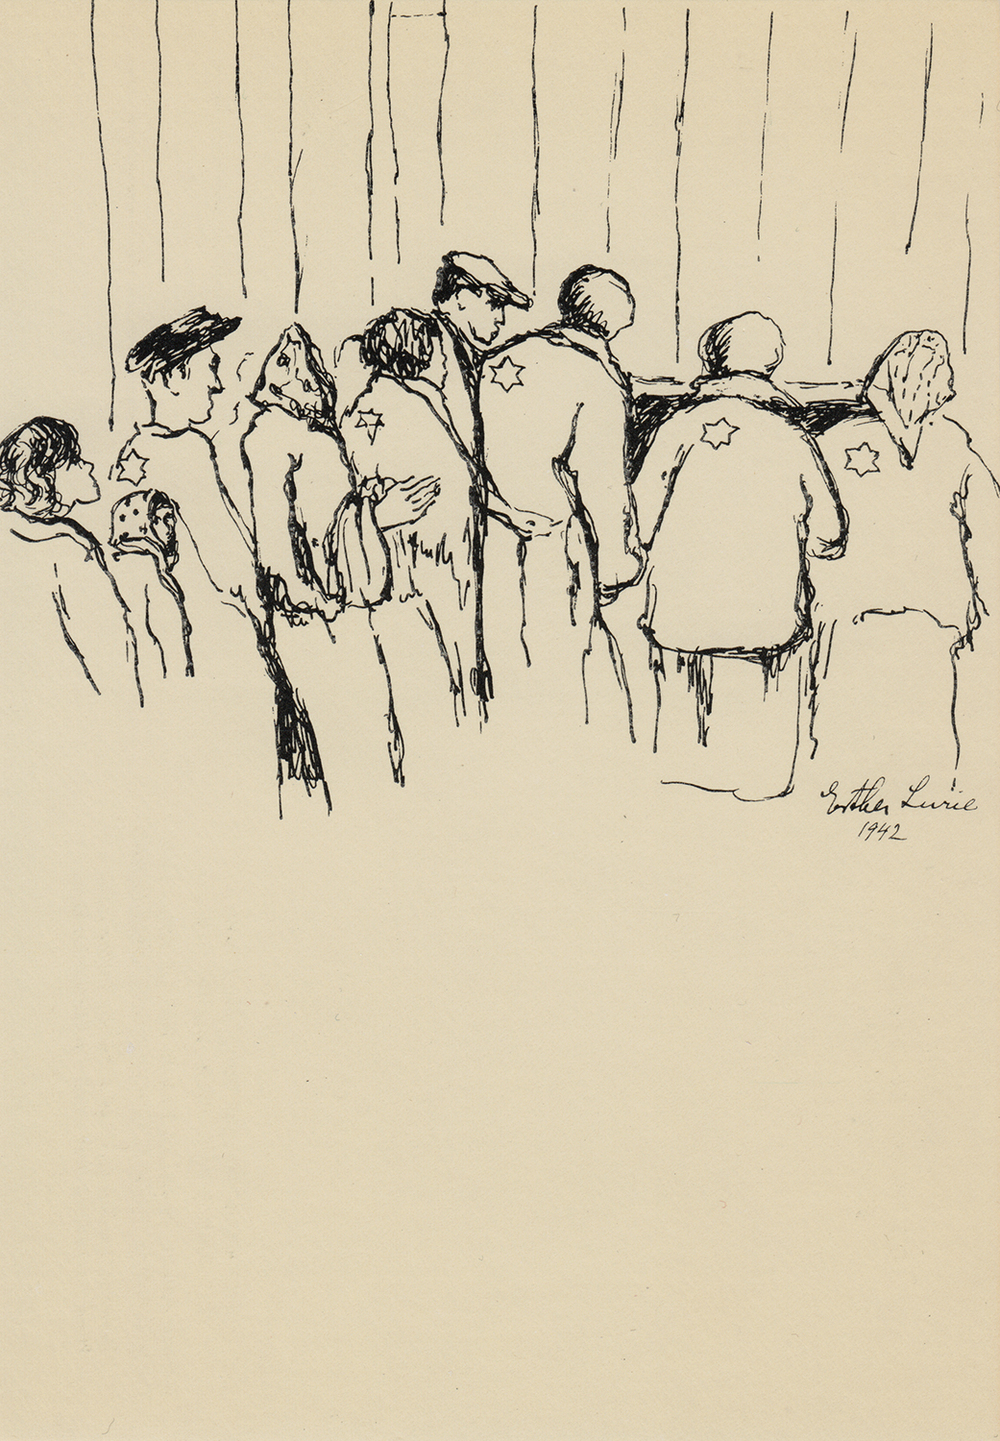 Drawn at Kovno Ghetto by Esther Lurie,1942.